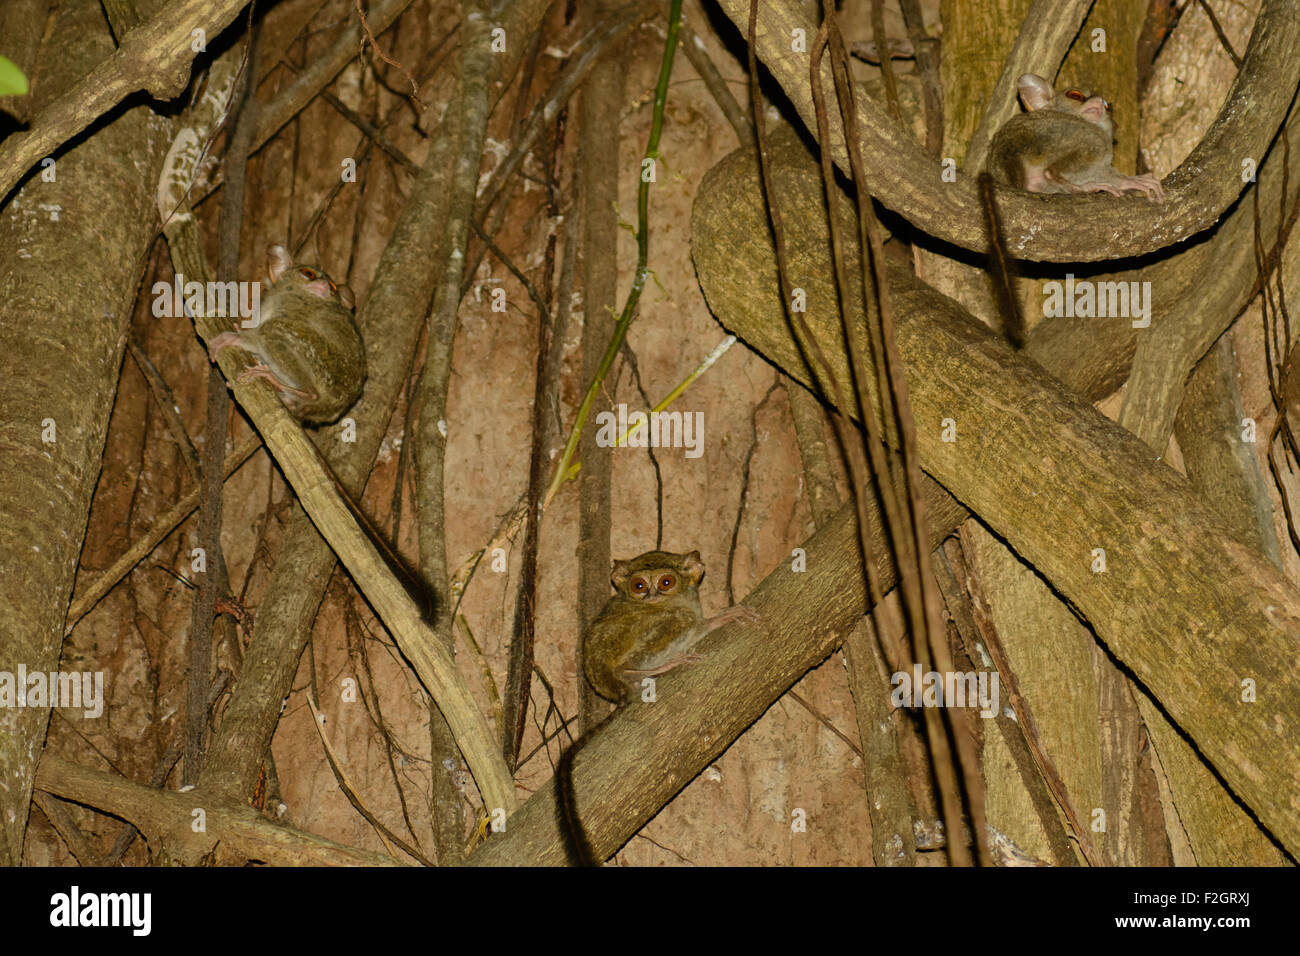 Three tarsius, tarsier in the tree where they live in the forest of Tangkoko National Park in North Sulawesi - Indonesia - Stock Image